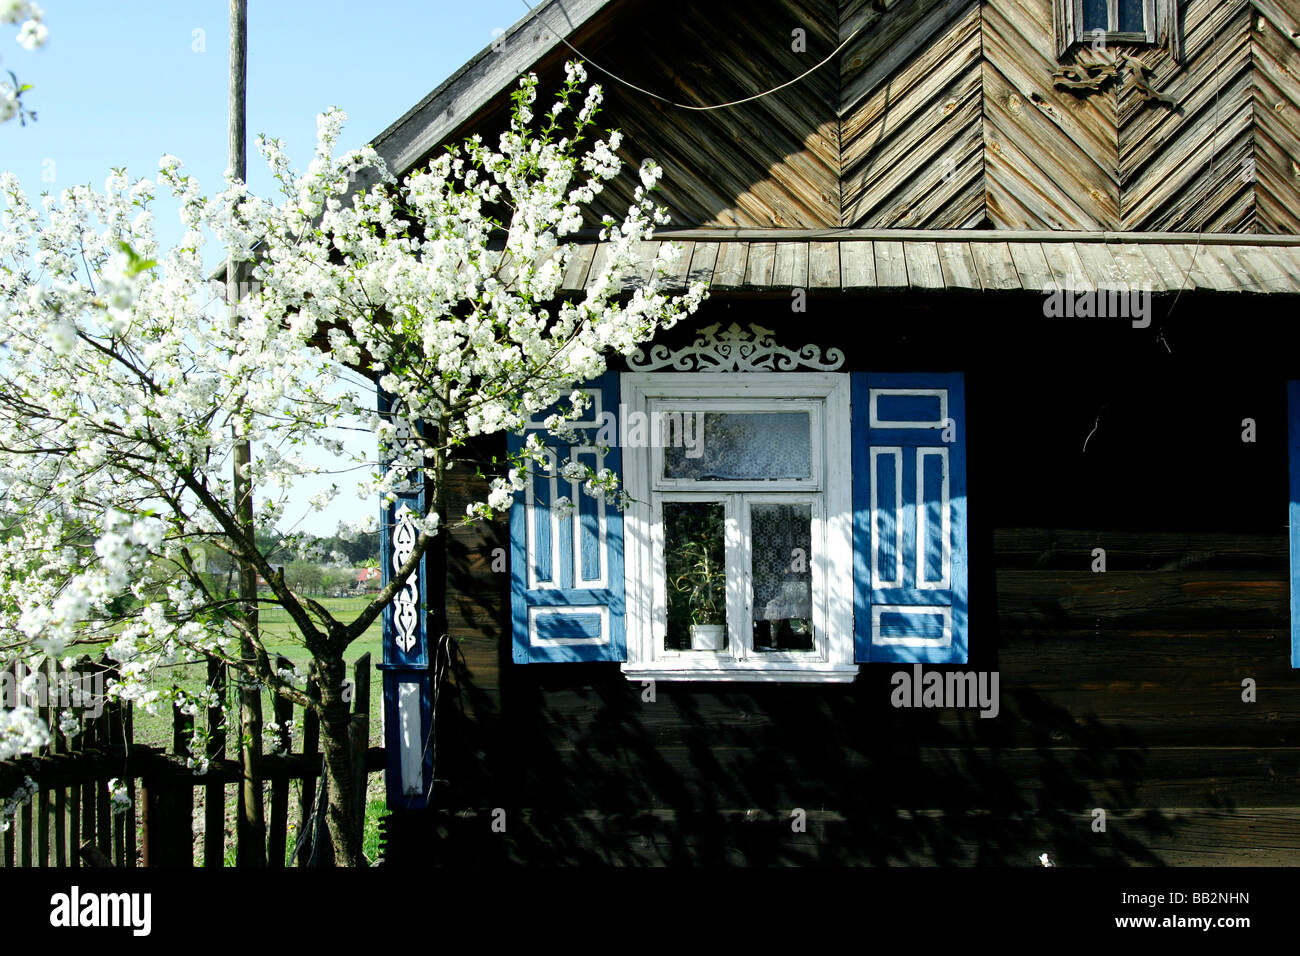 Decorated windows in Soce village, Poland - Stock Image